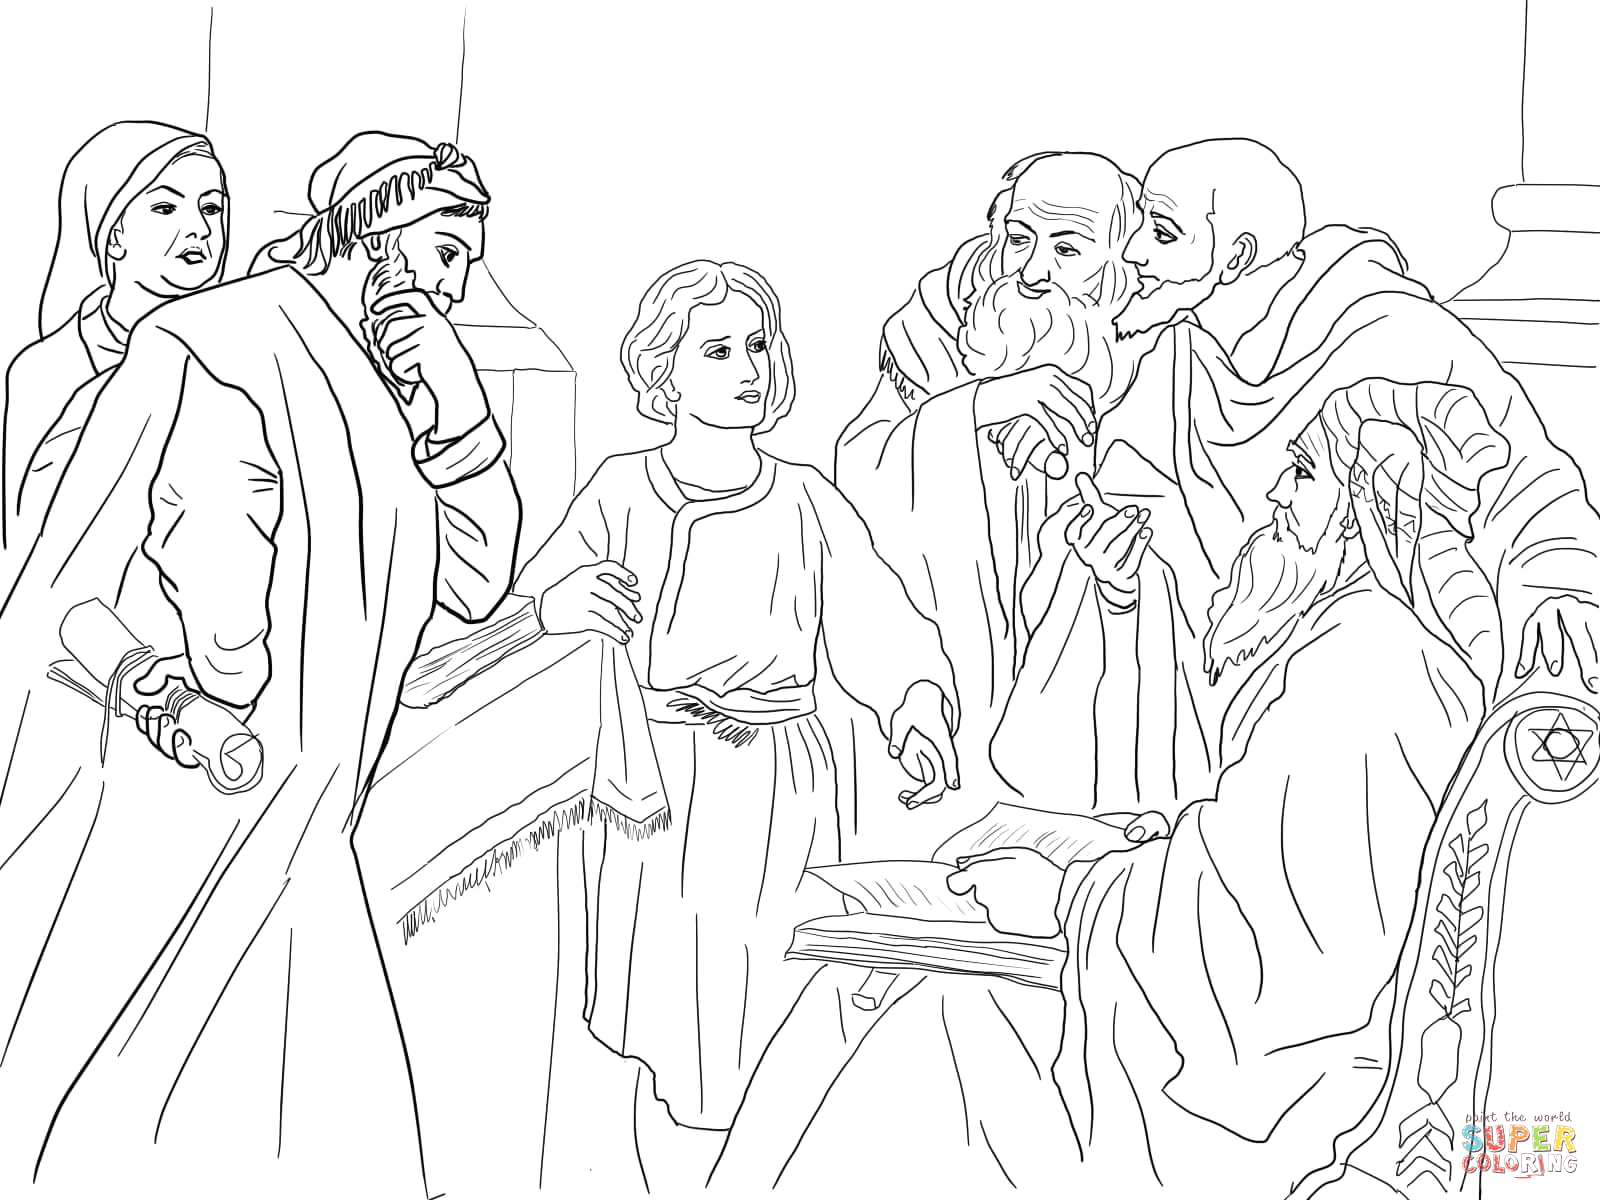 Jesus In the Temple at 12 Coloring Page Kleurplaat 12 Jarige Jezus In De Tempel Jezus In De Tempel